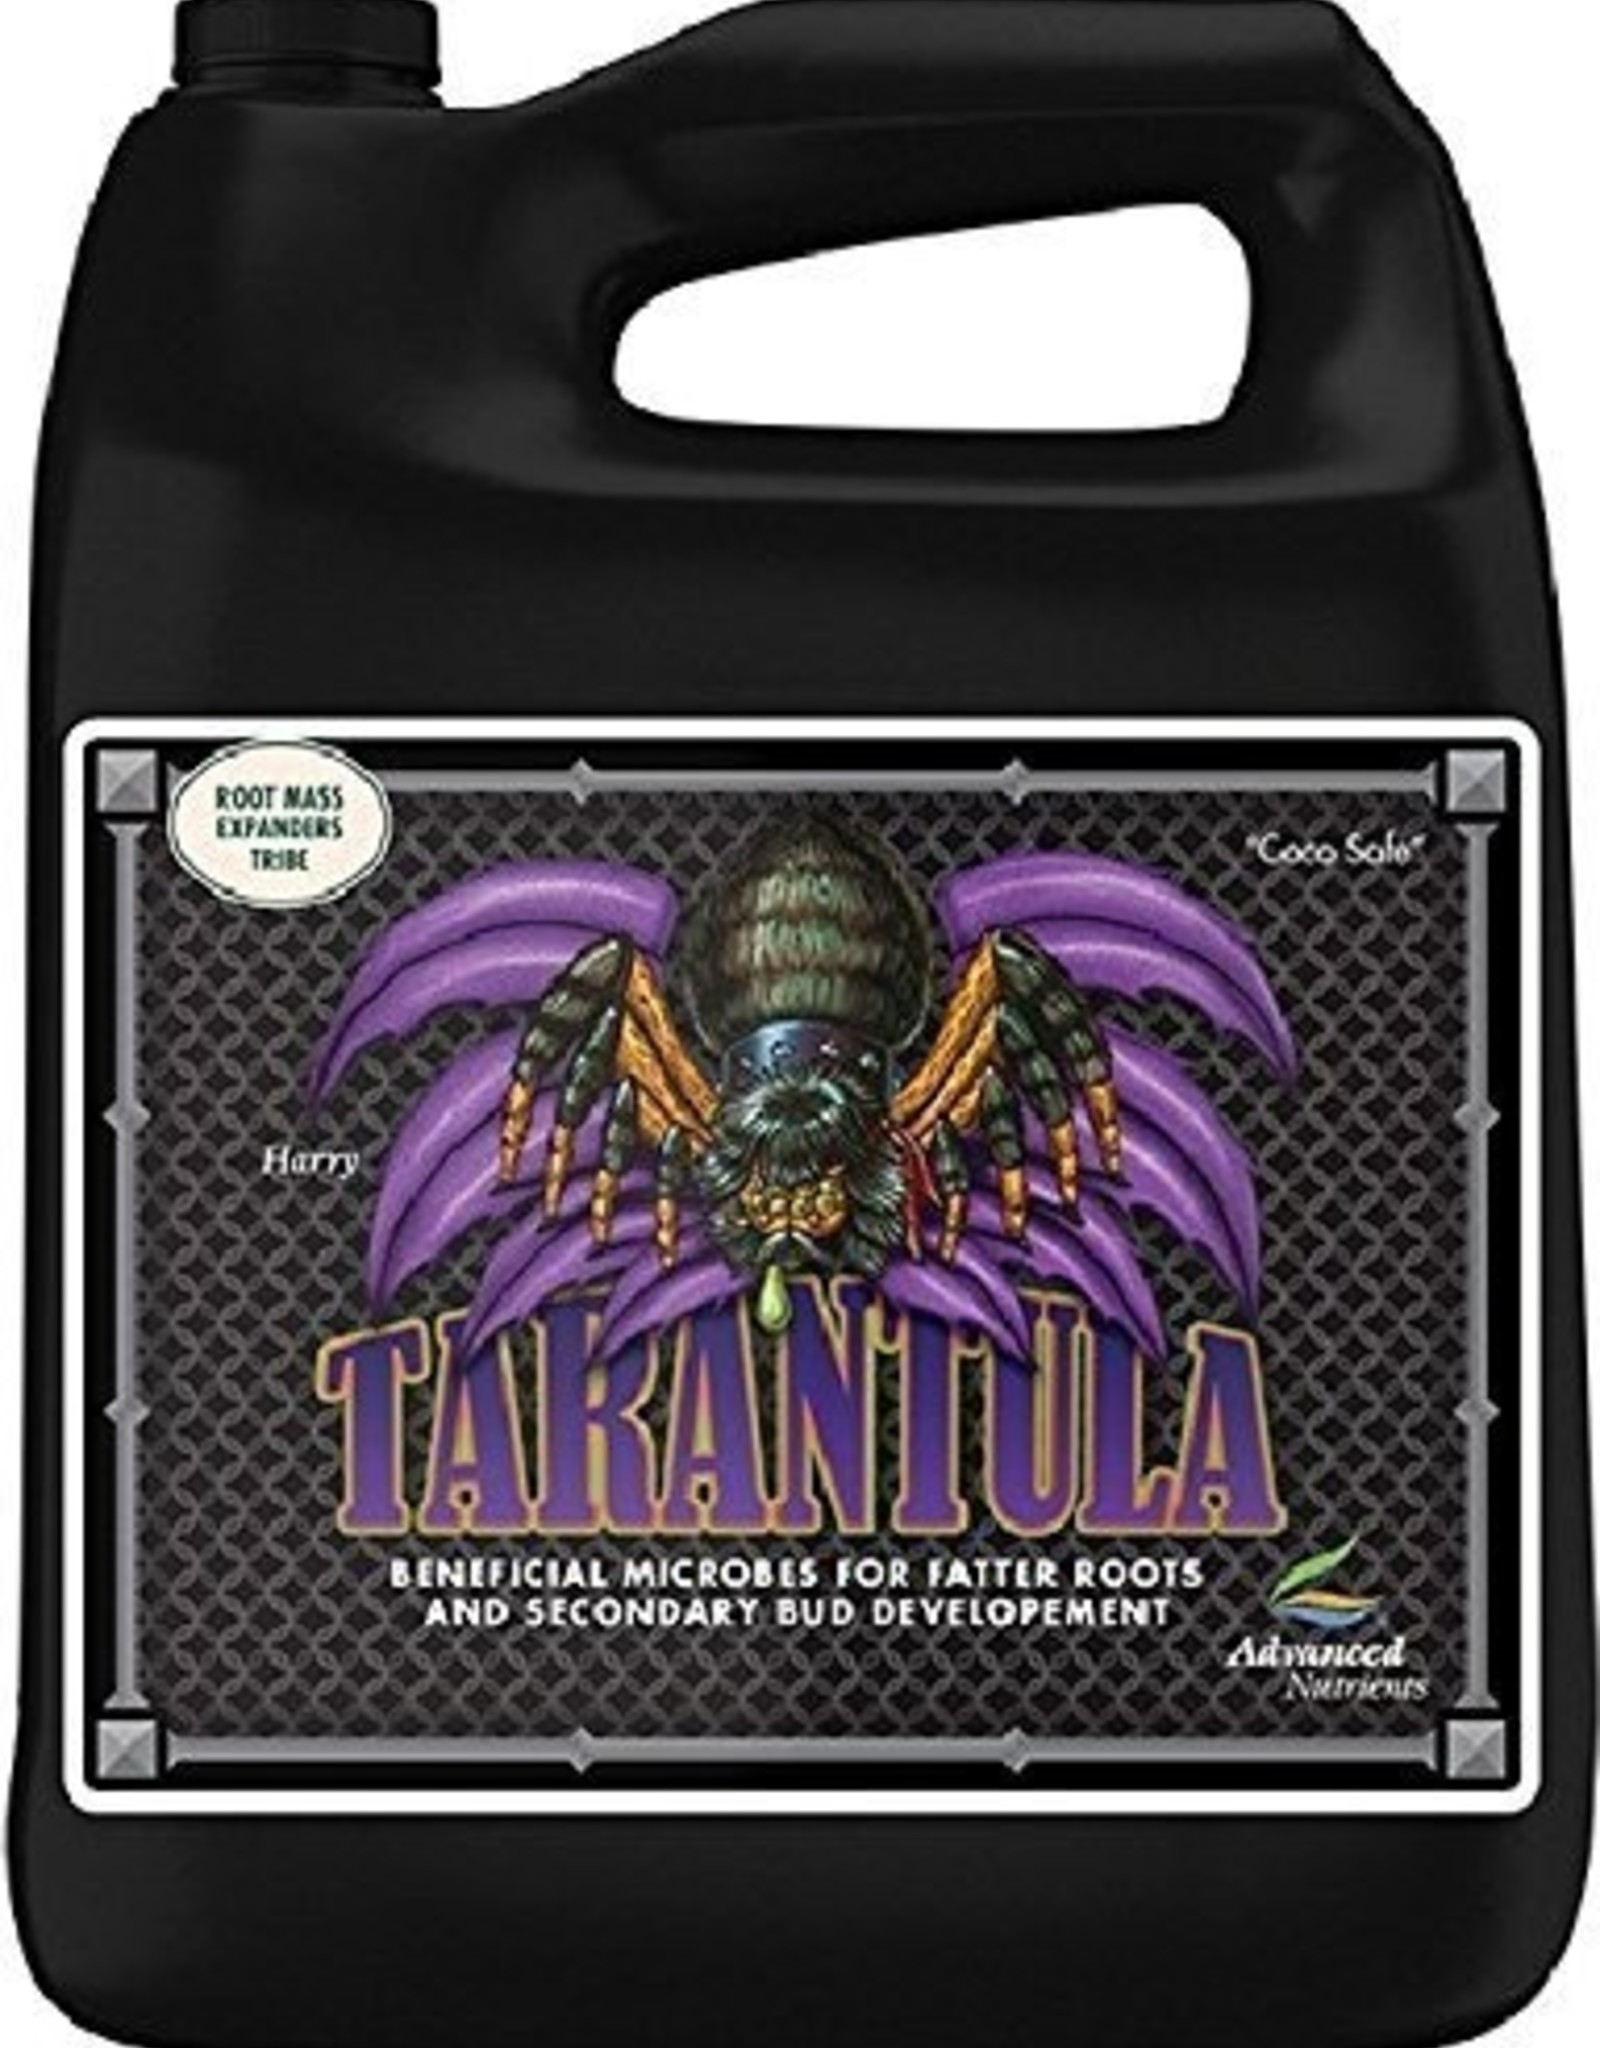 ADVANCED NUTRIENTS Tarantula 4L